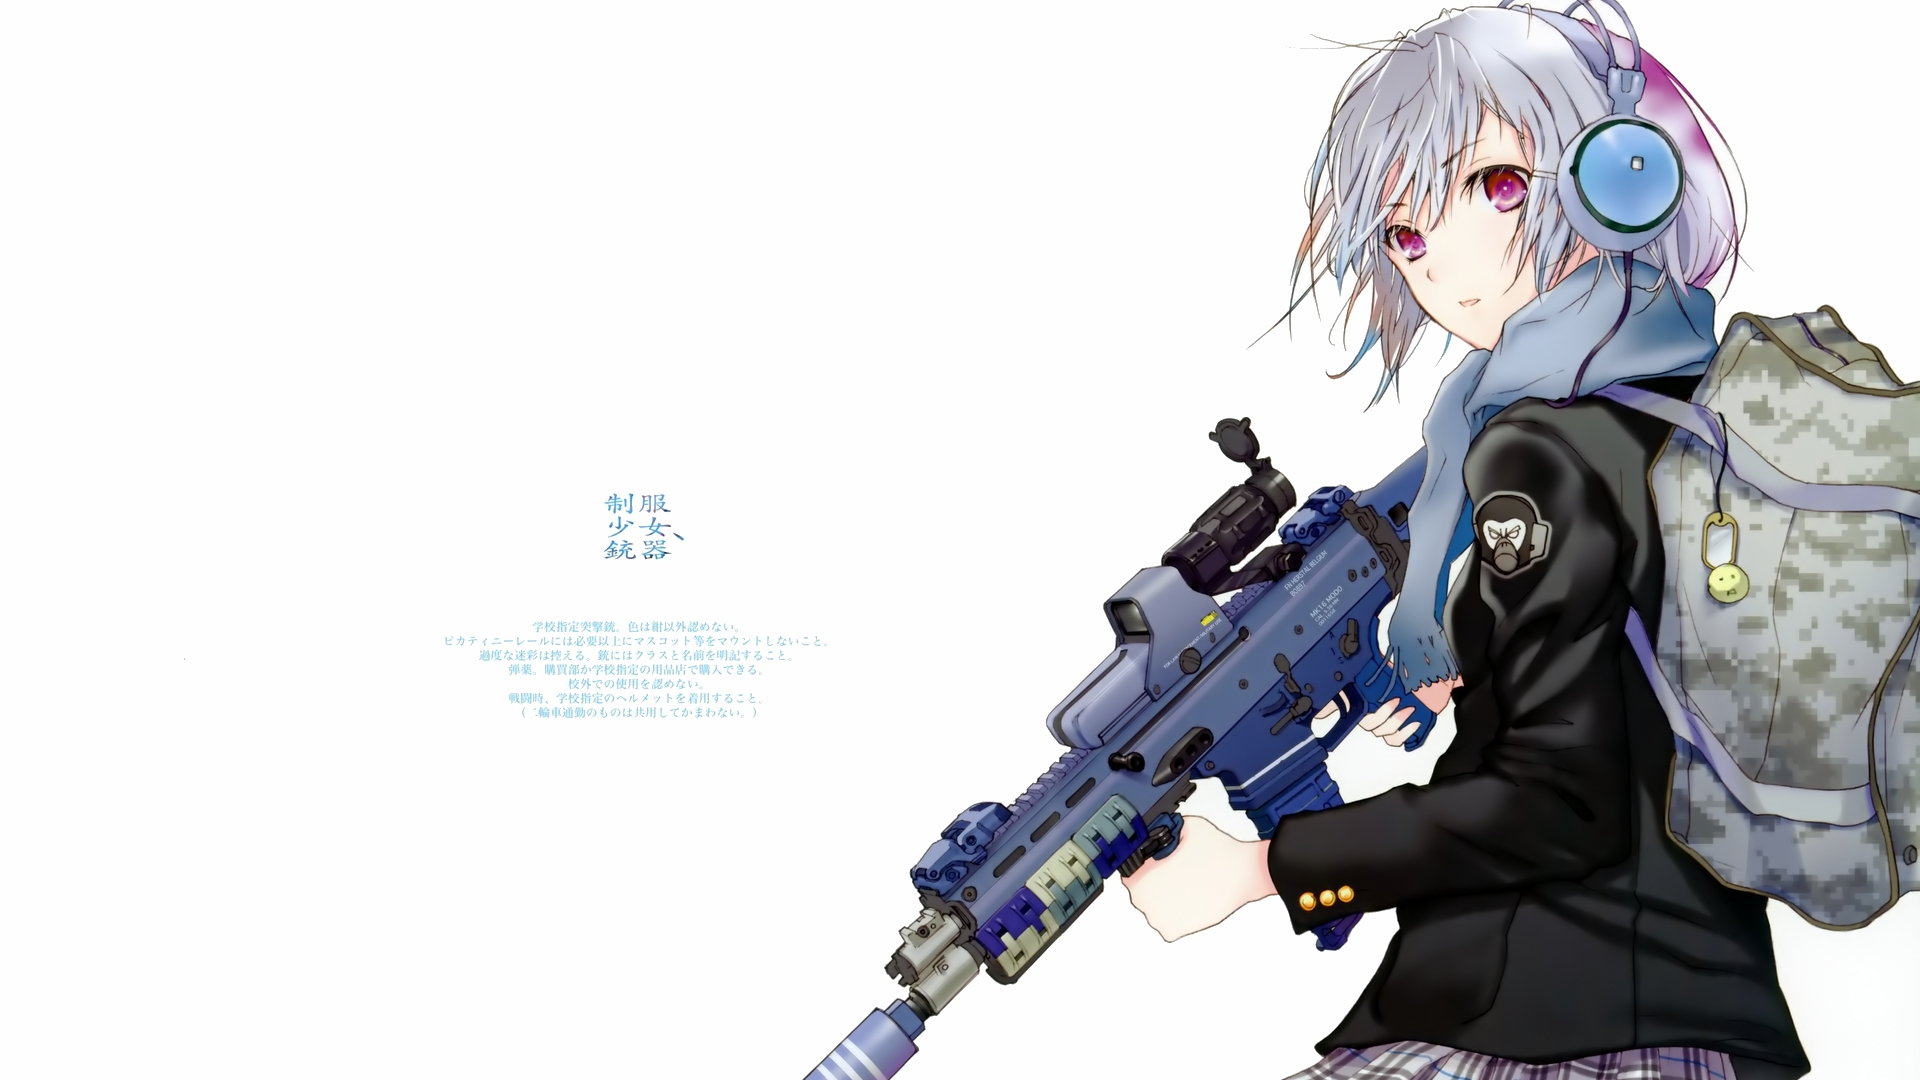 Anime sniper girl 797873 2880x1800px high def desktop background 1920x1080